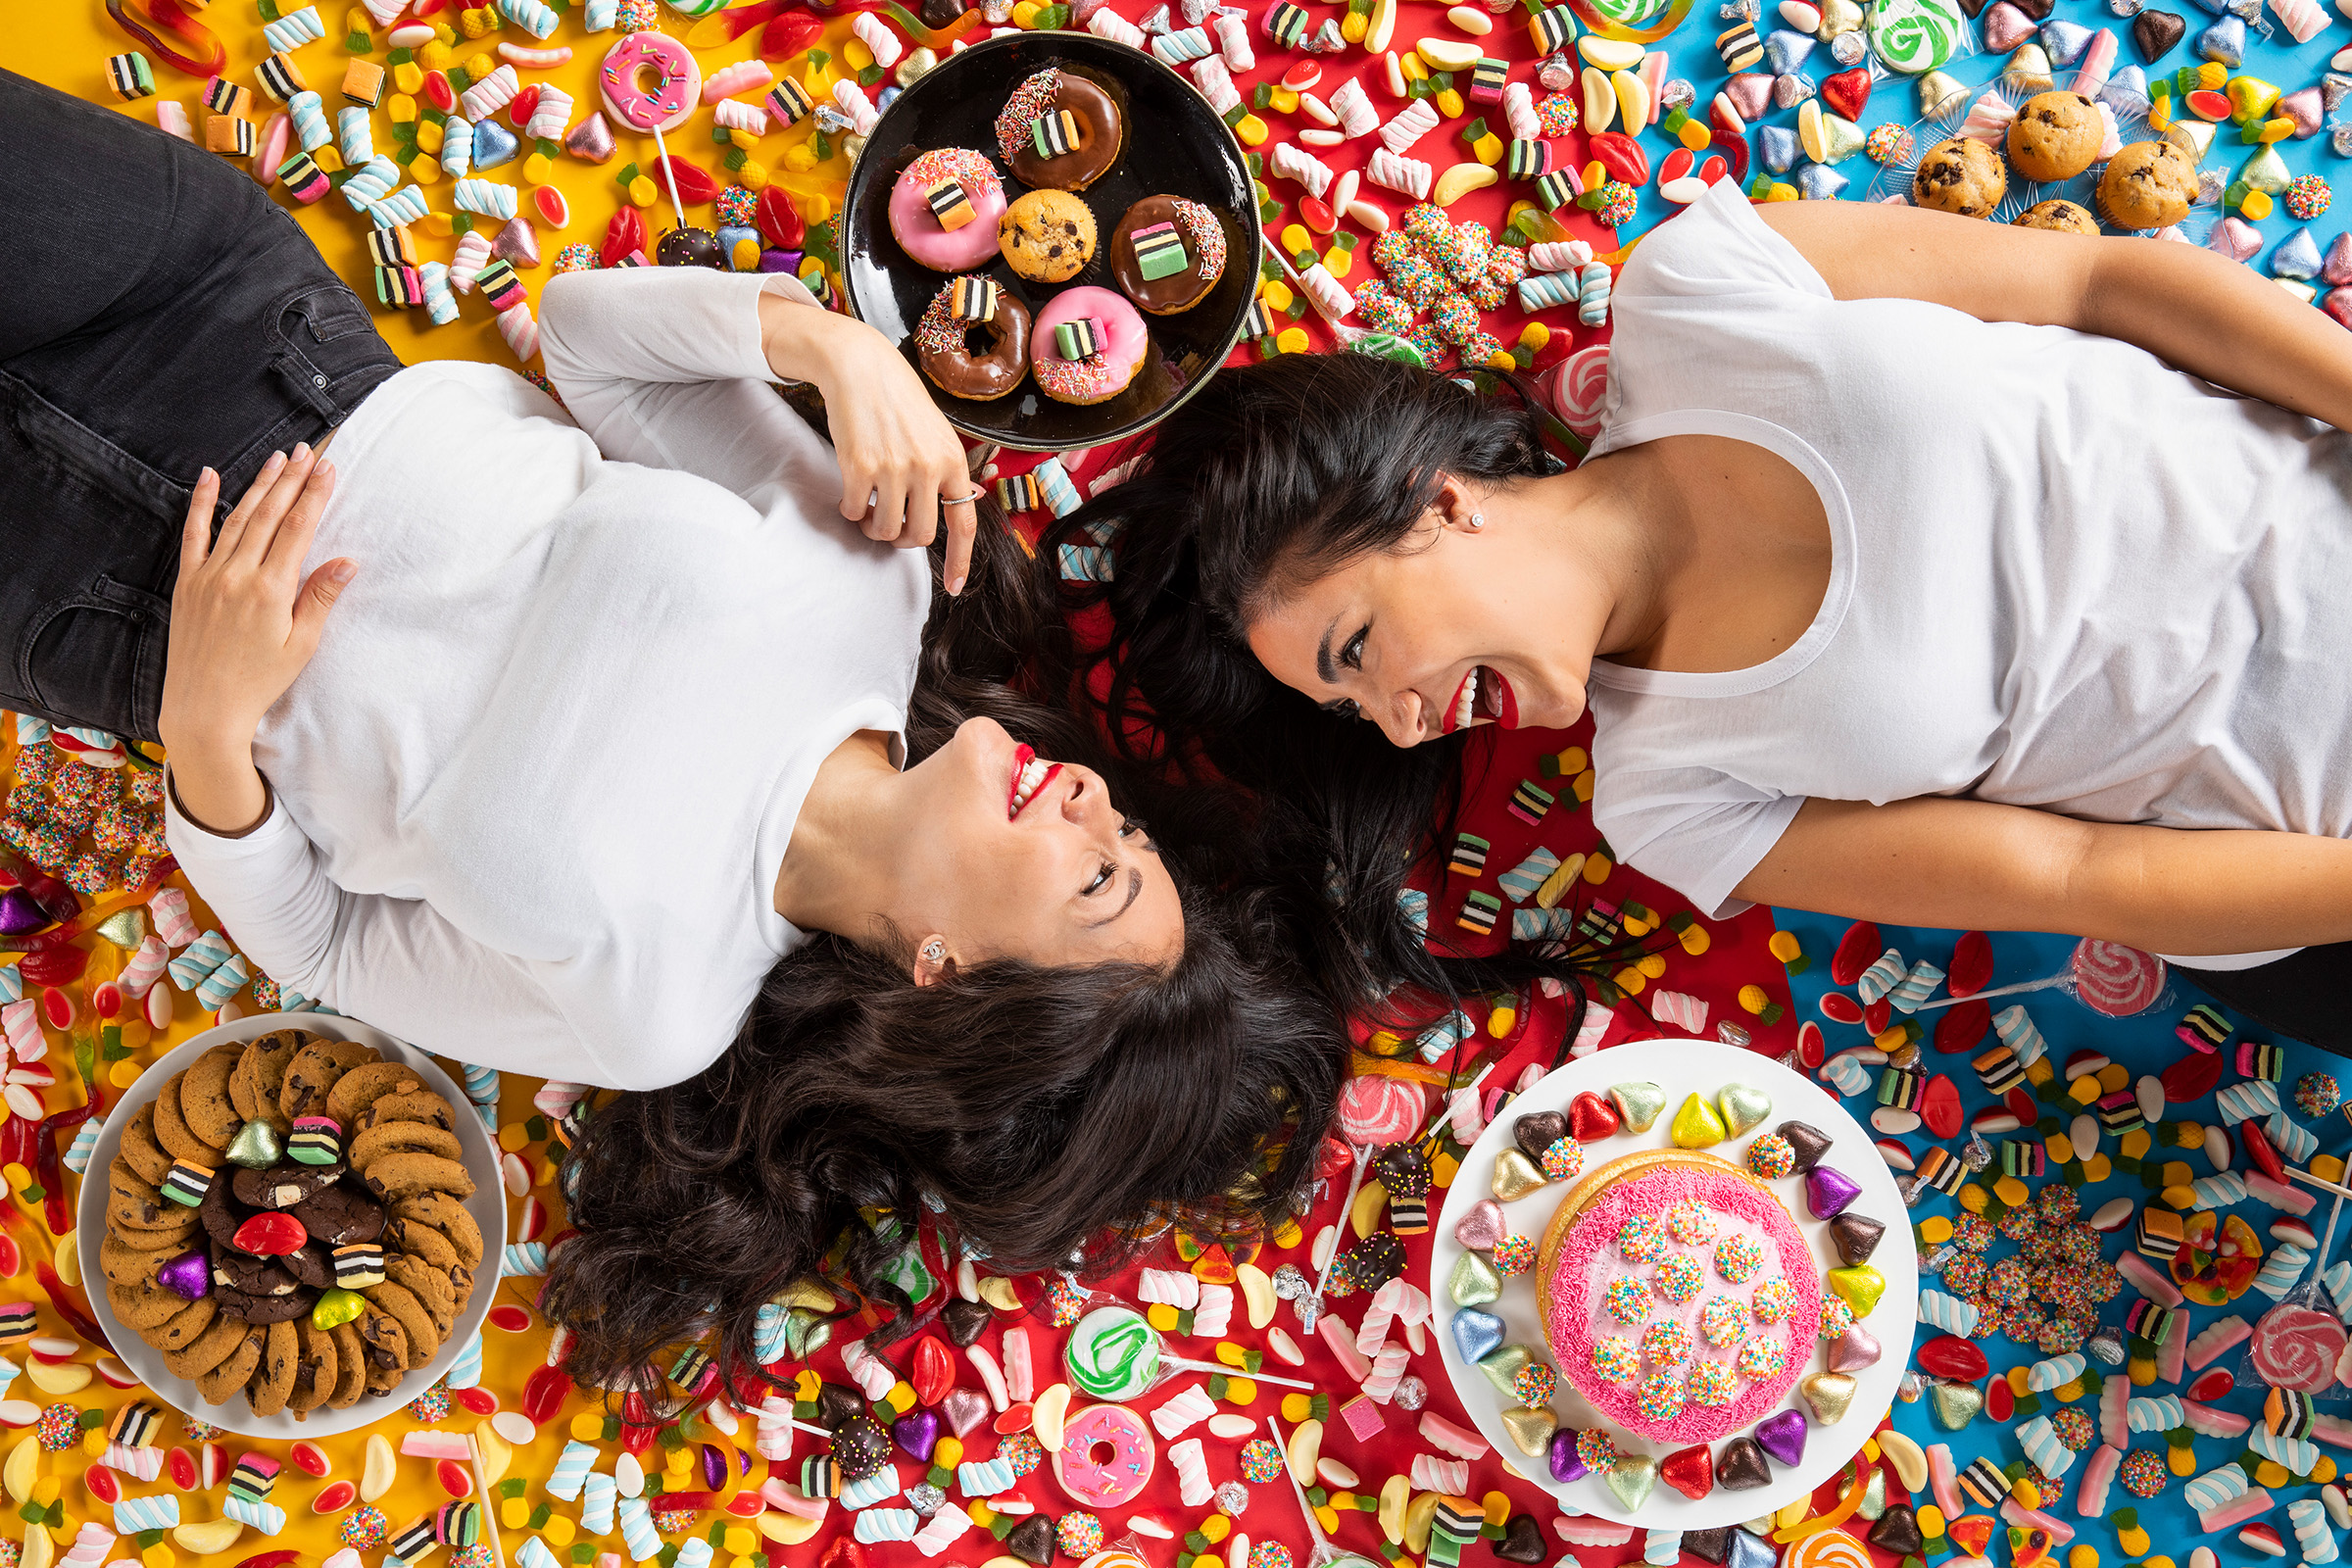 Editorial studio photography of the 2 Lick Your Phone founders surrounded by lollies and laughing at each other